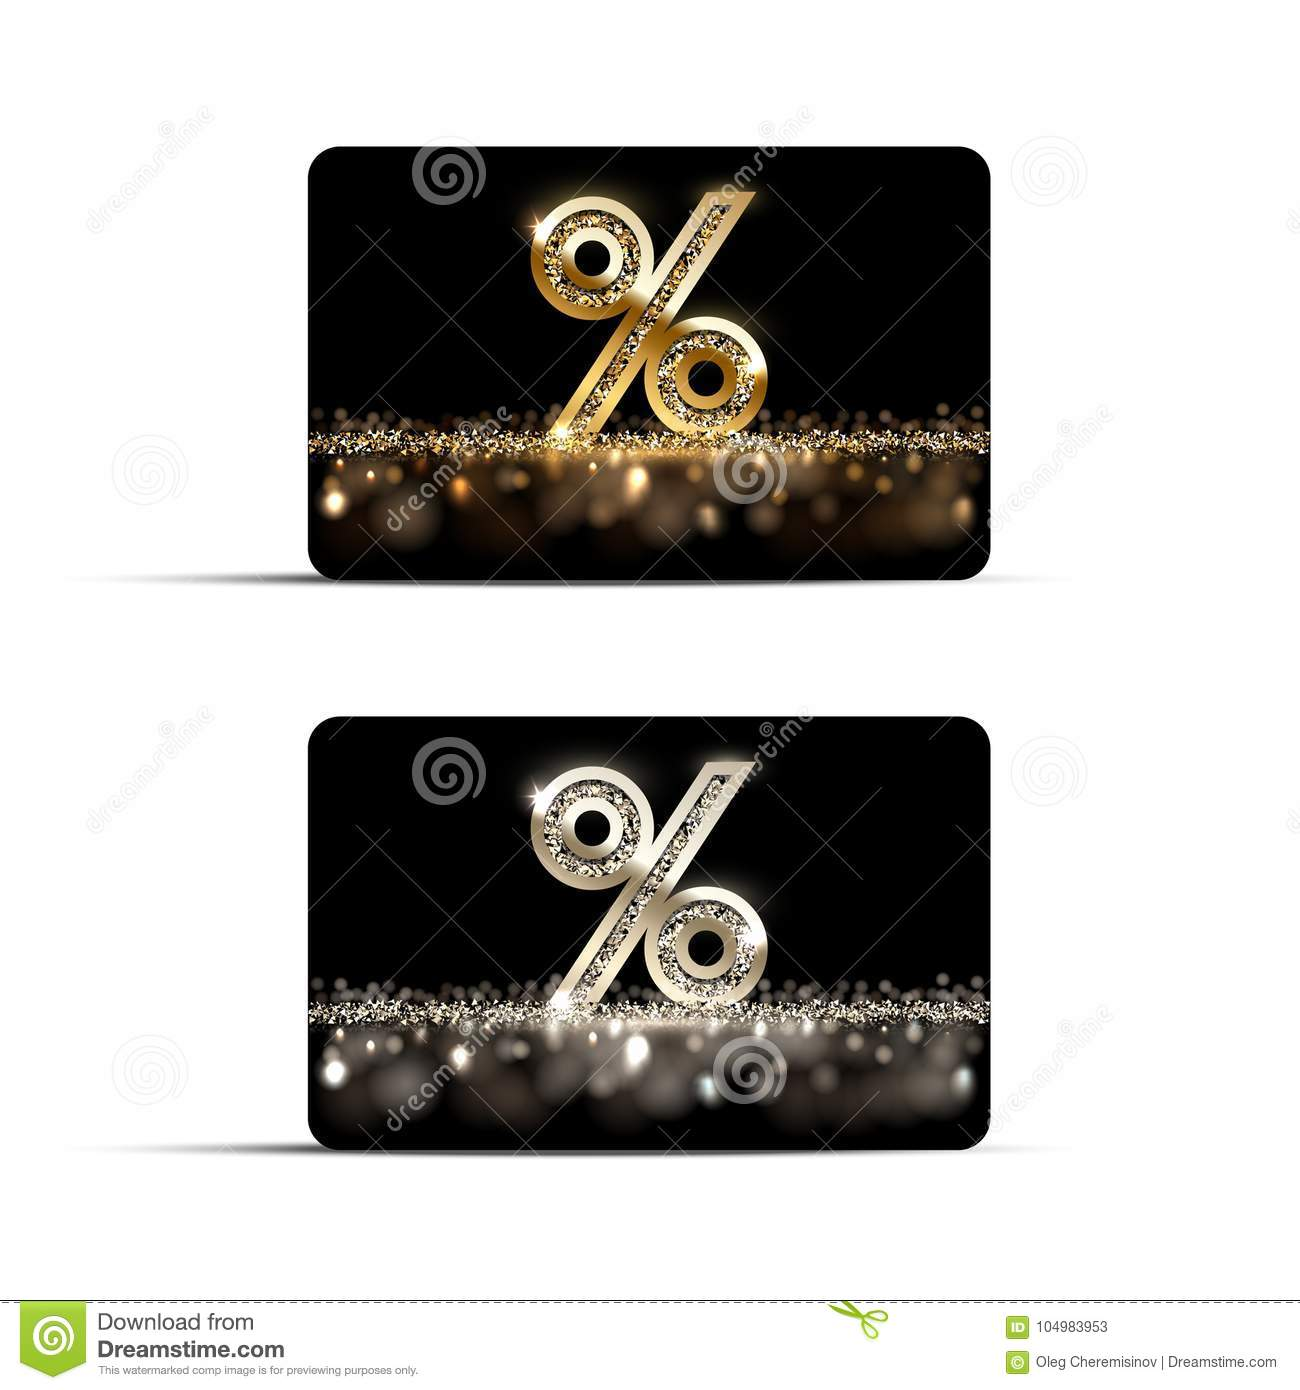 Golden and silver discount or gift cards isolated on white background. Vector luxury design elements.